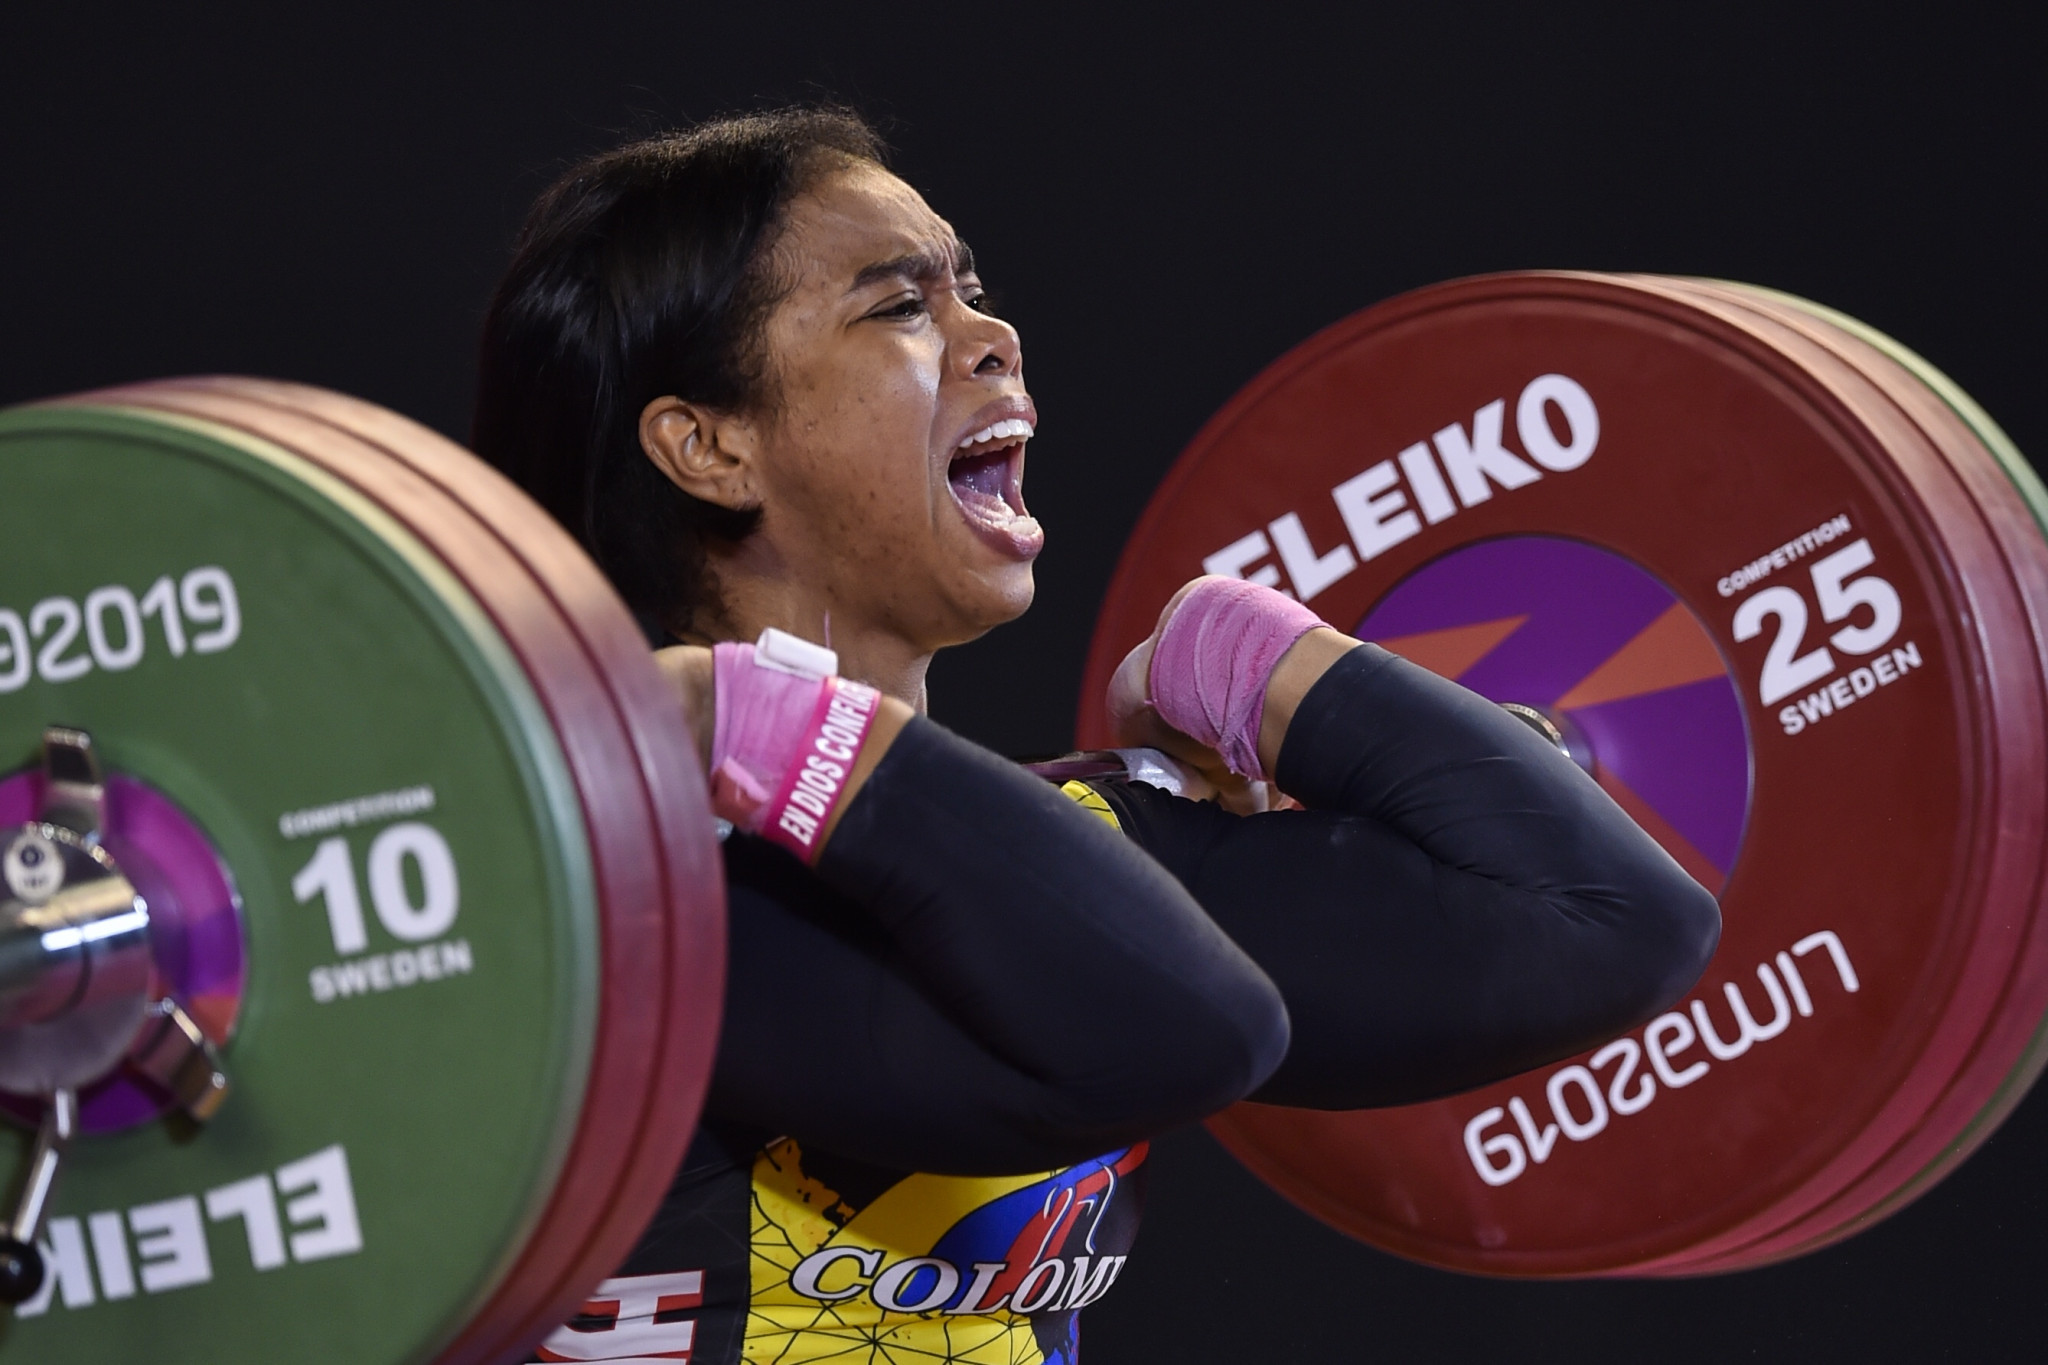 Colombia may only send one female weightlifter to Tokyo 2020, so Leidy Solis faces as anxious wait to see of she is selected ©Getty Images